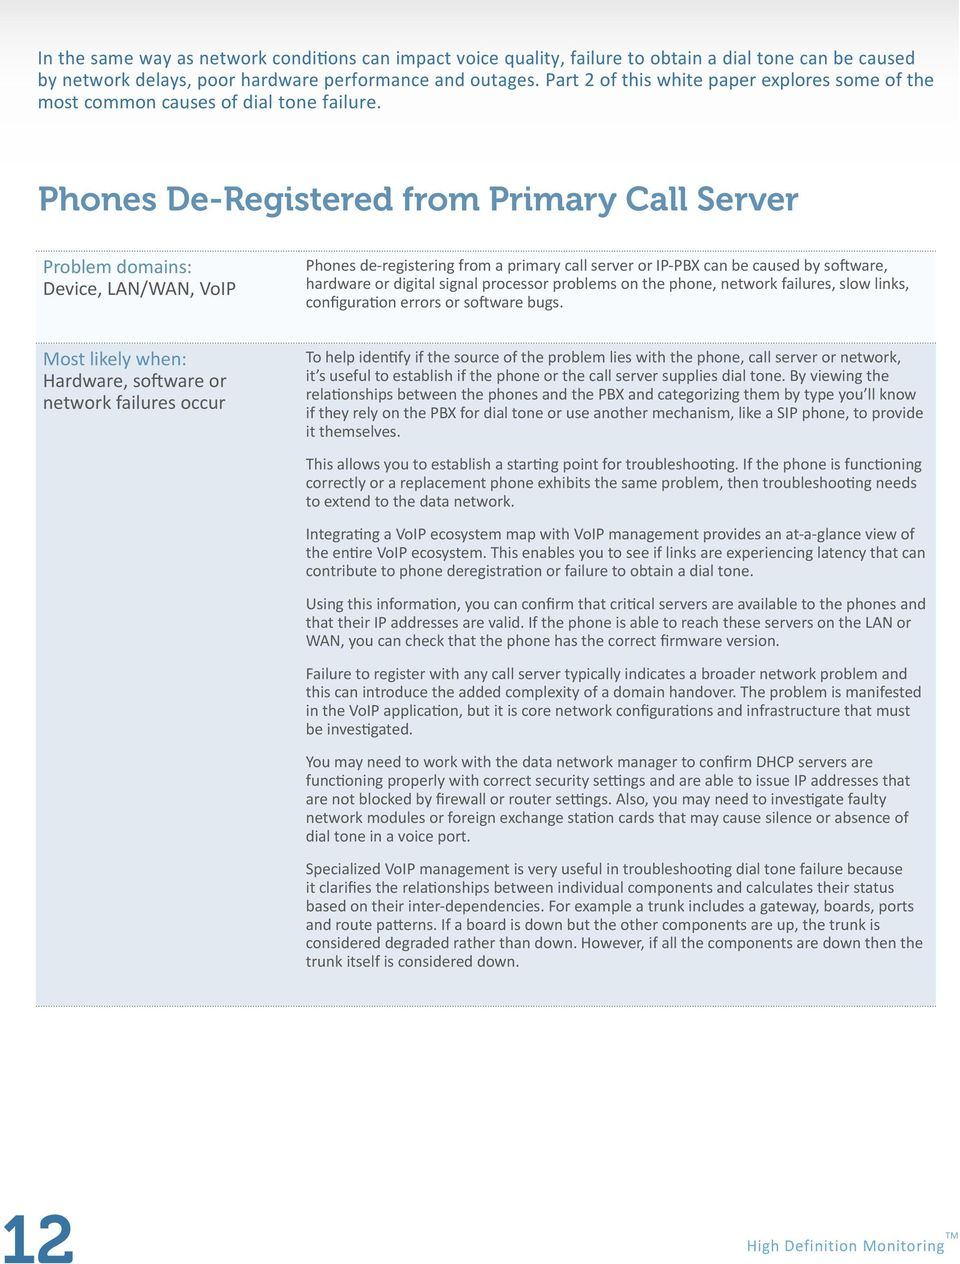 Phones De-Registered from Primary Call Server Device, LAN/WAN, VoIP Phones de-registering from a primary call server or IP-PBX can be caused by software, hardware or digital signal processor problems